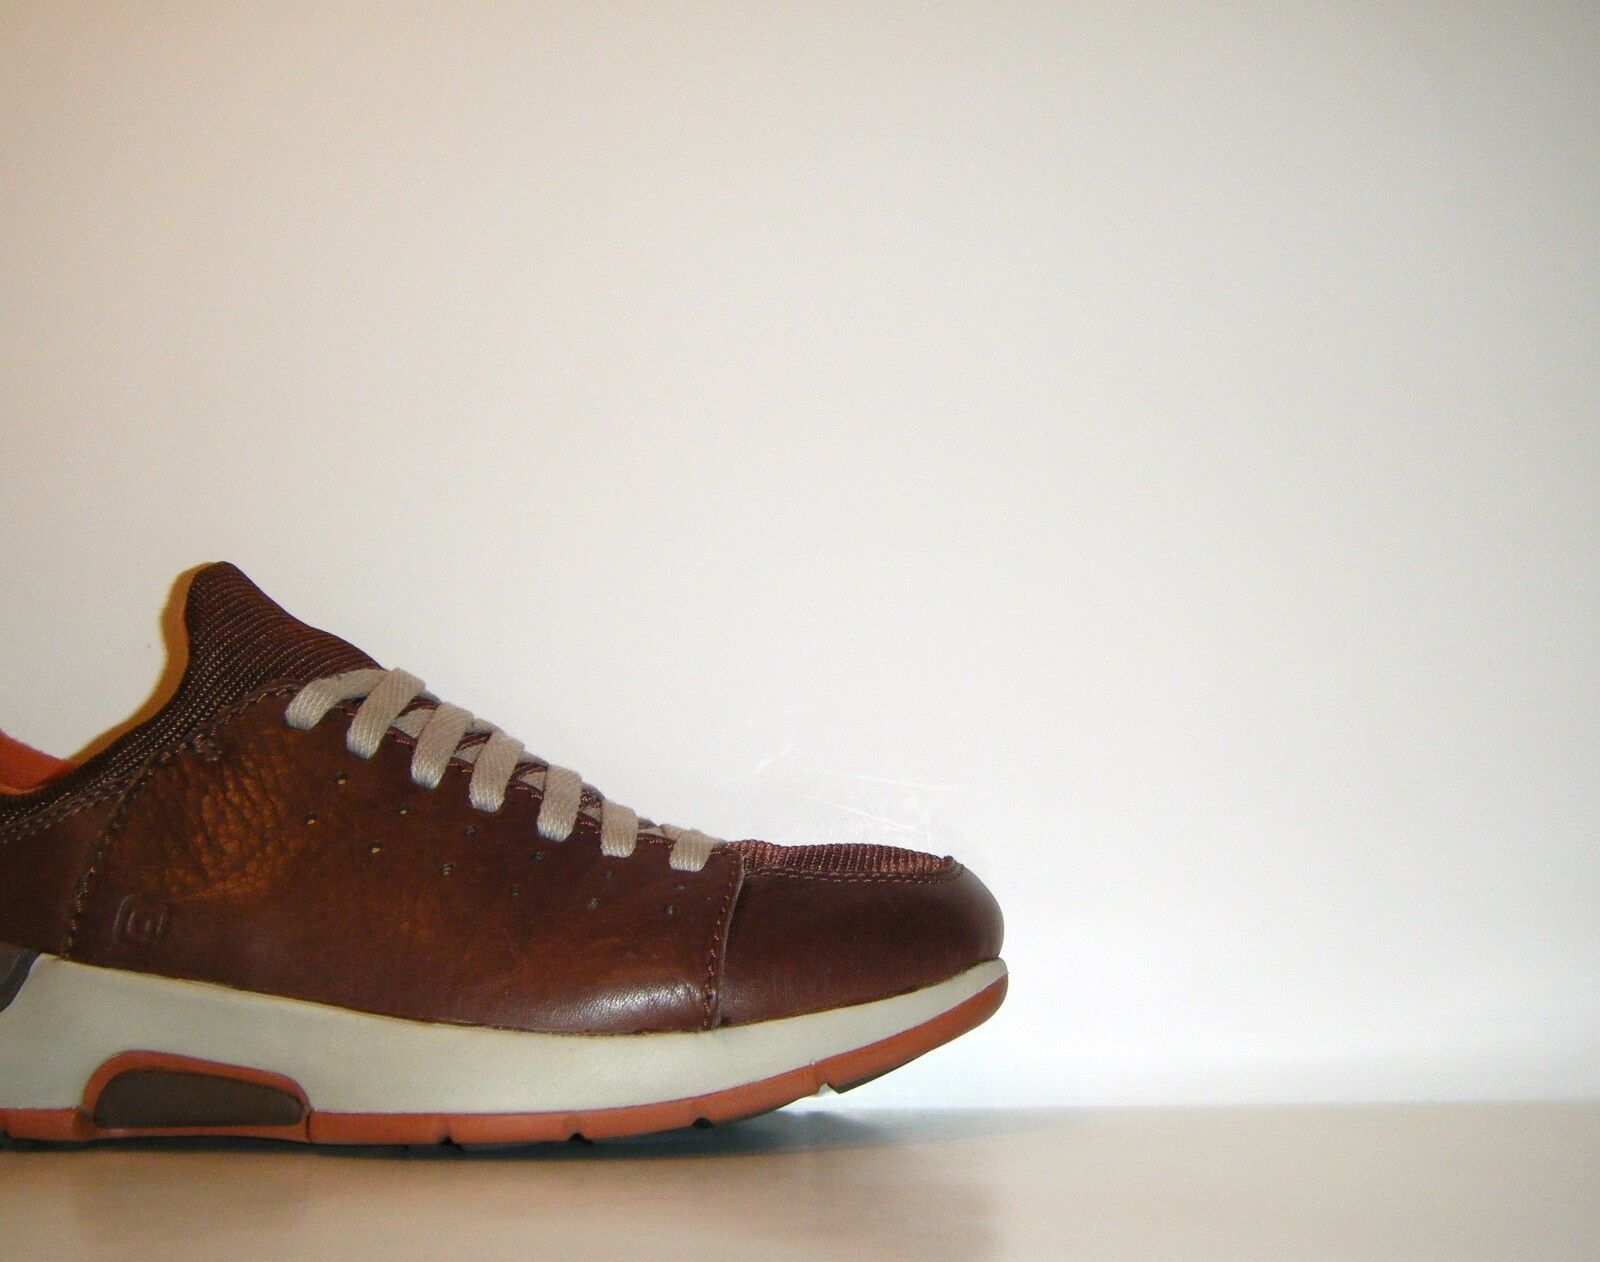 Vtg 2003 Nike Air Presto Path Promo Sample Small 9-10 Look See Cole Haan Trainer